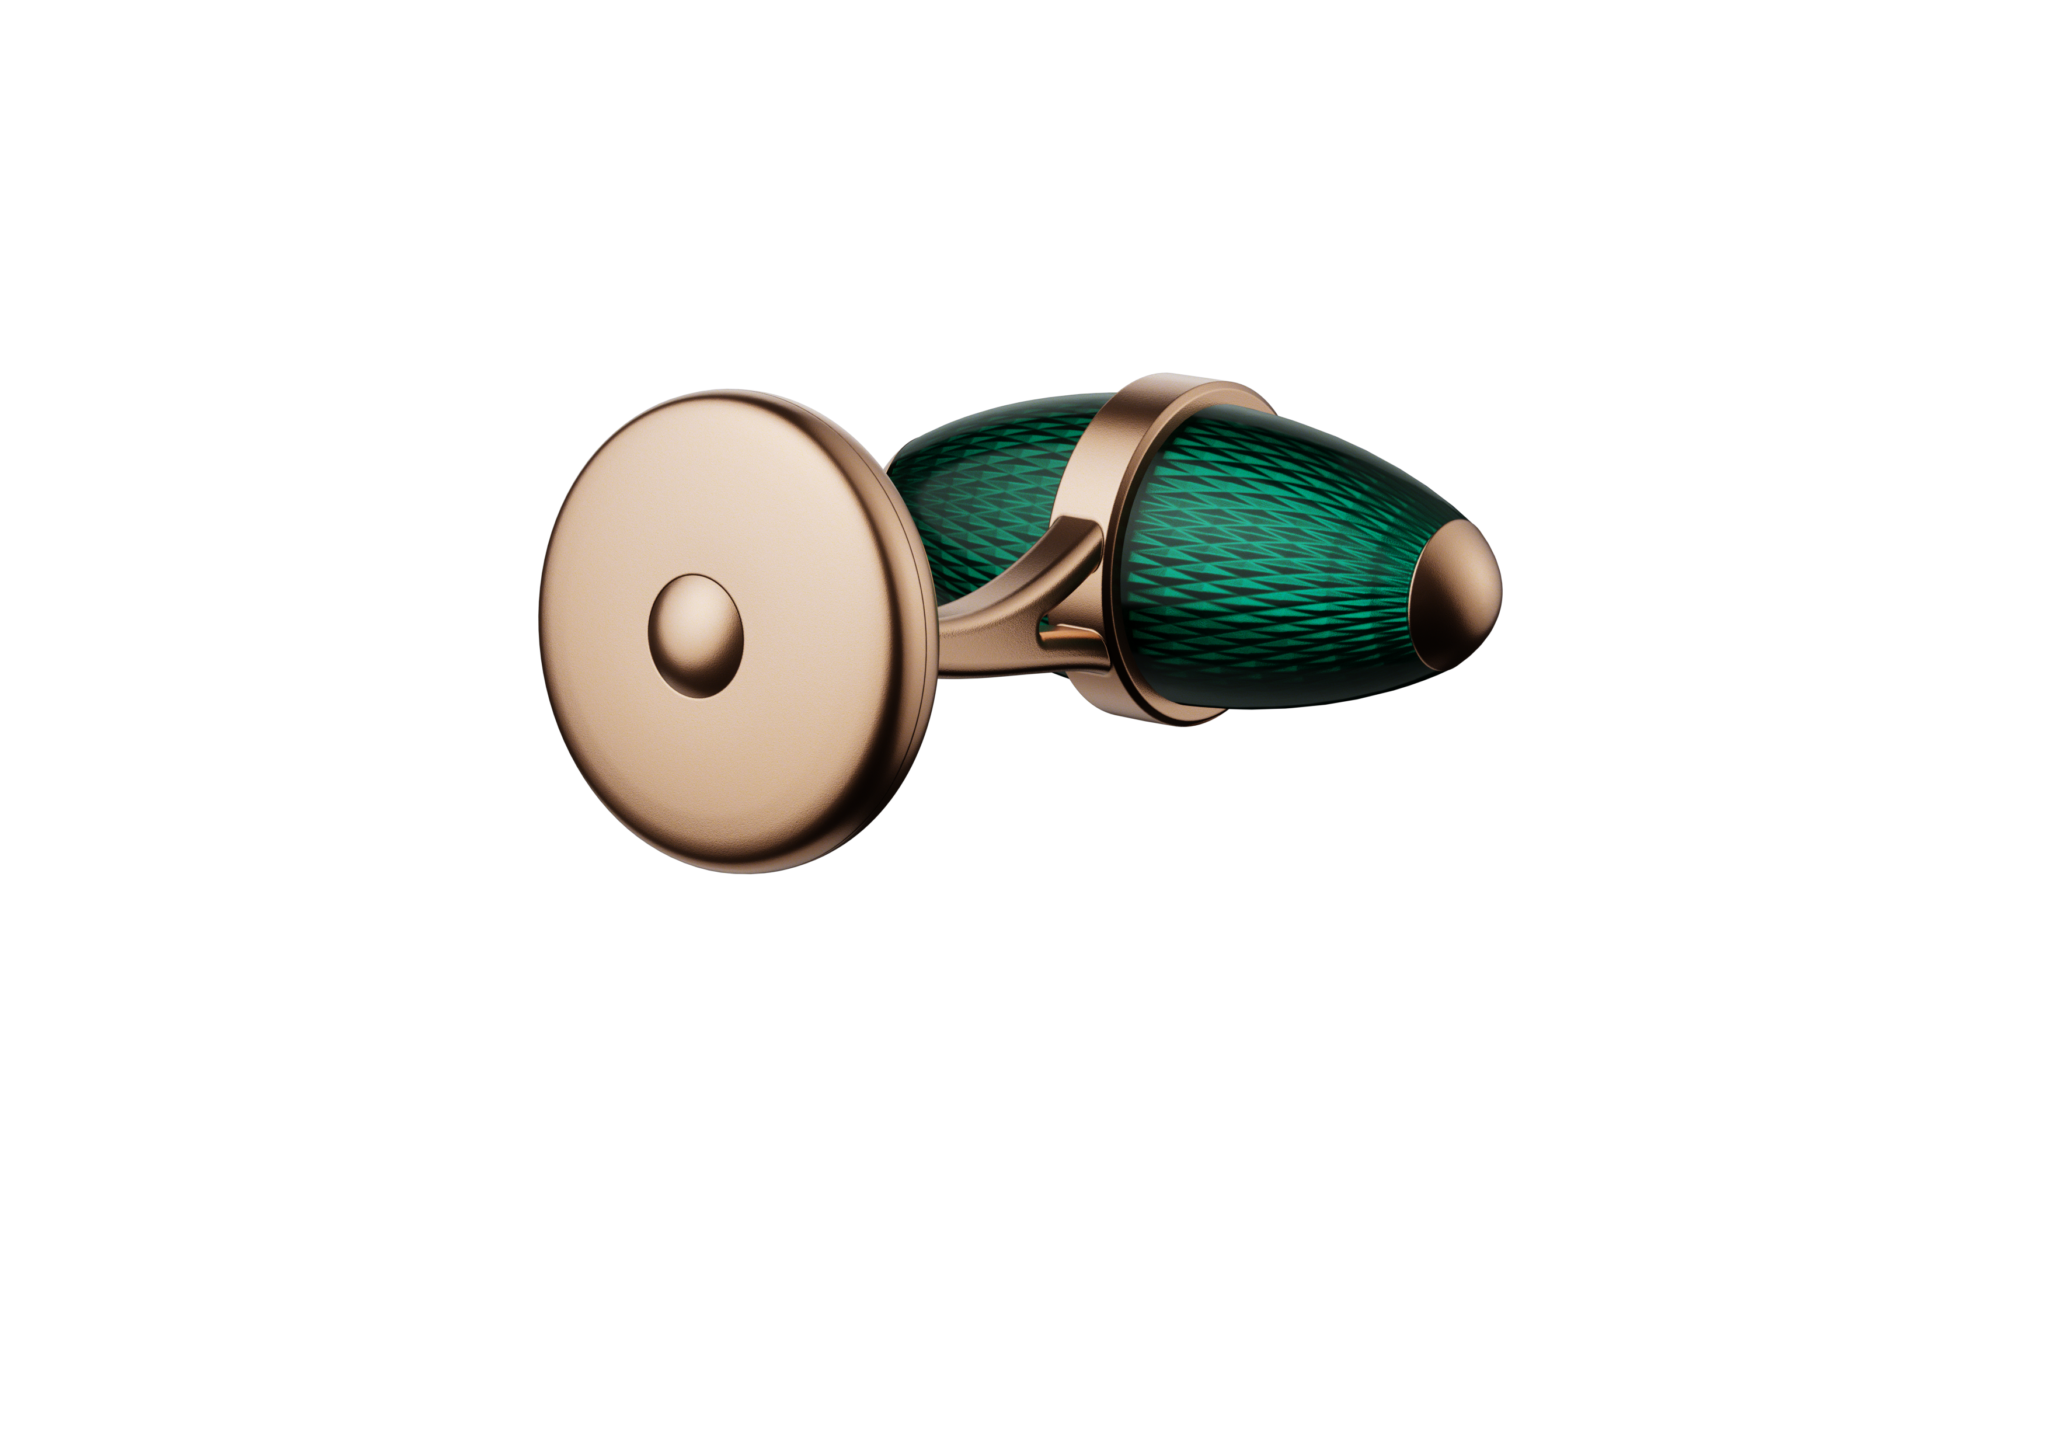 kerbedanz_Cufflinks_Ogive_TURQUOISE_DOS_Rose-gold